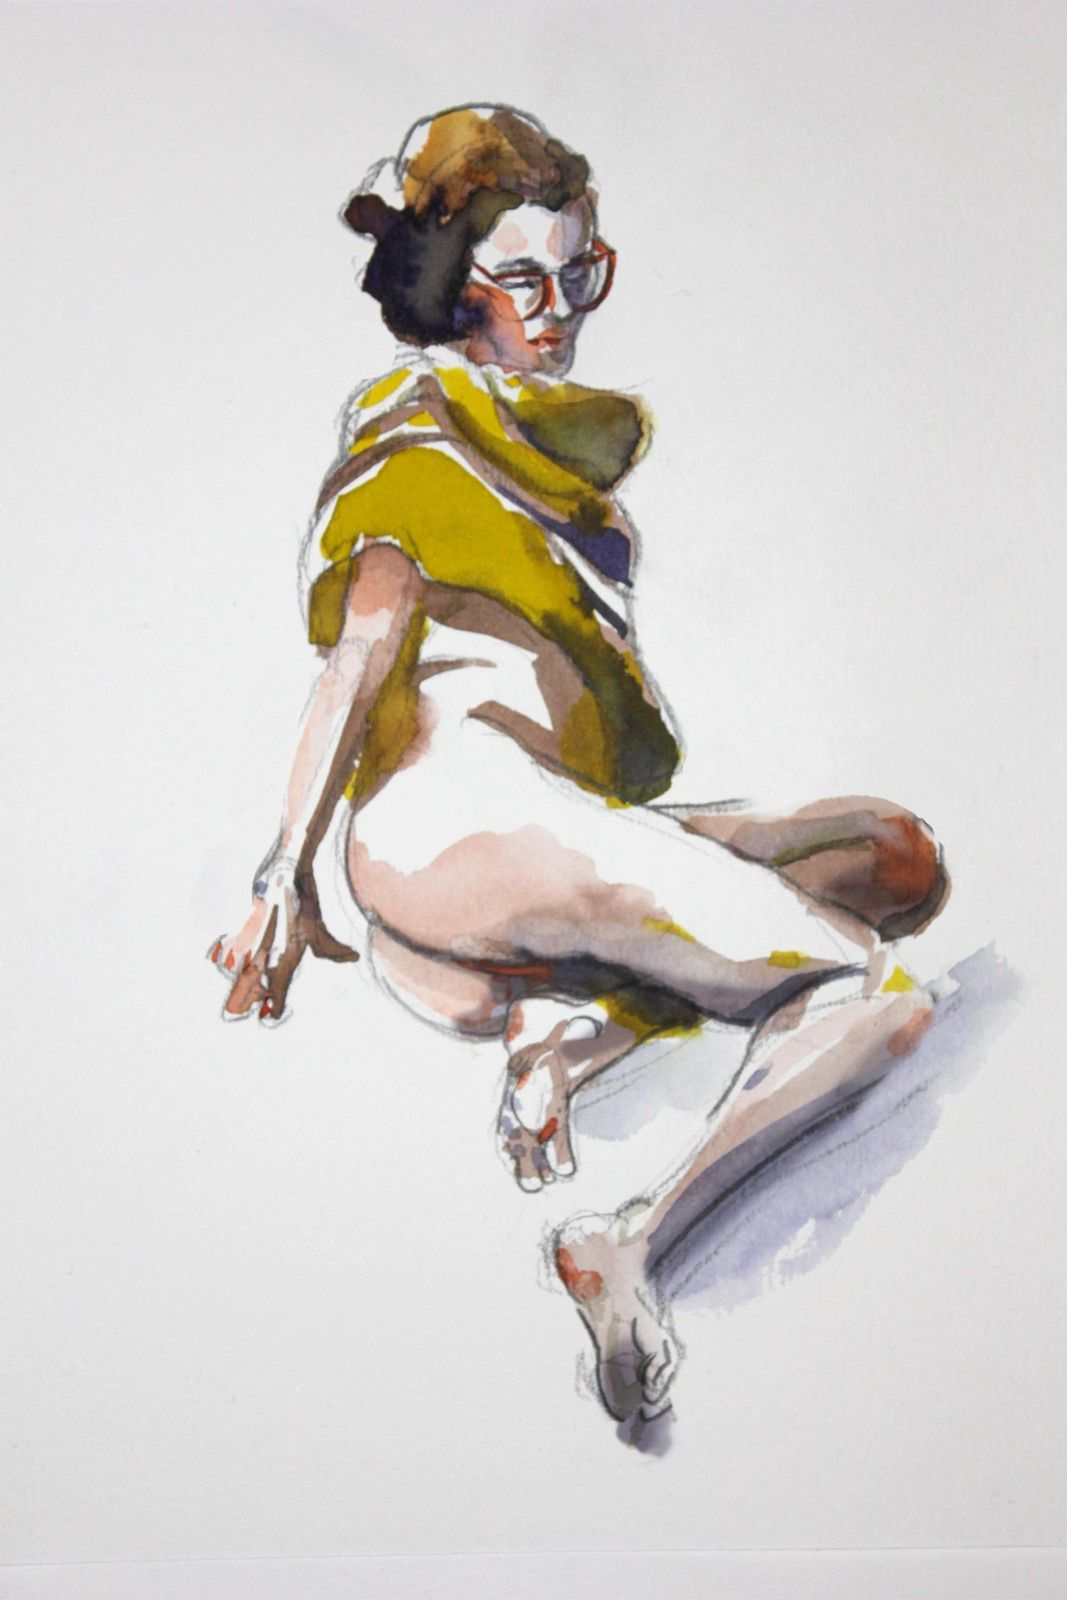 Modèle Vivant : pose de 12 minutes à l'encre aquarelle / Life-drawing : required time of 12 minutes, with brillant watercolour